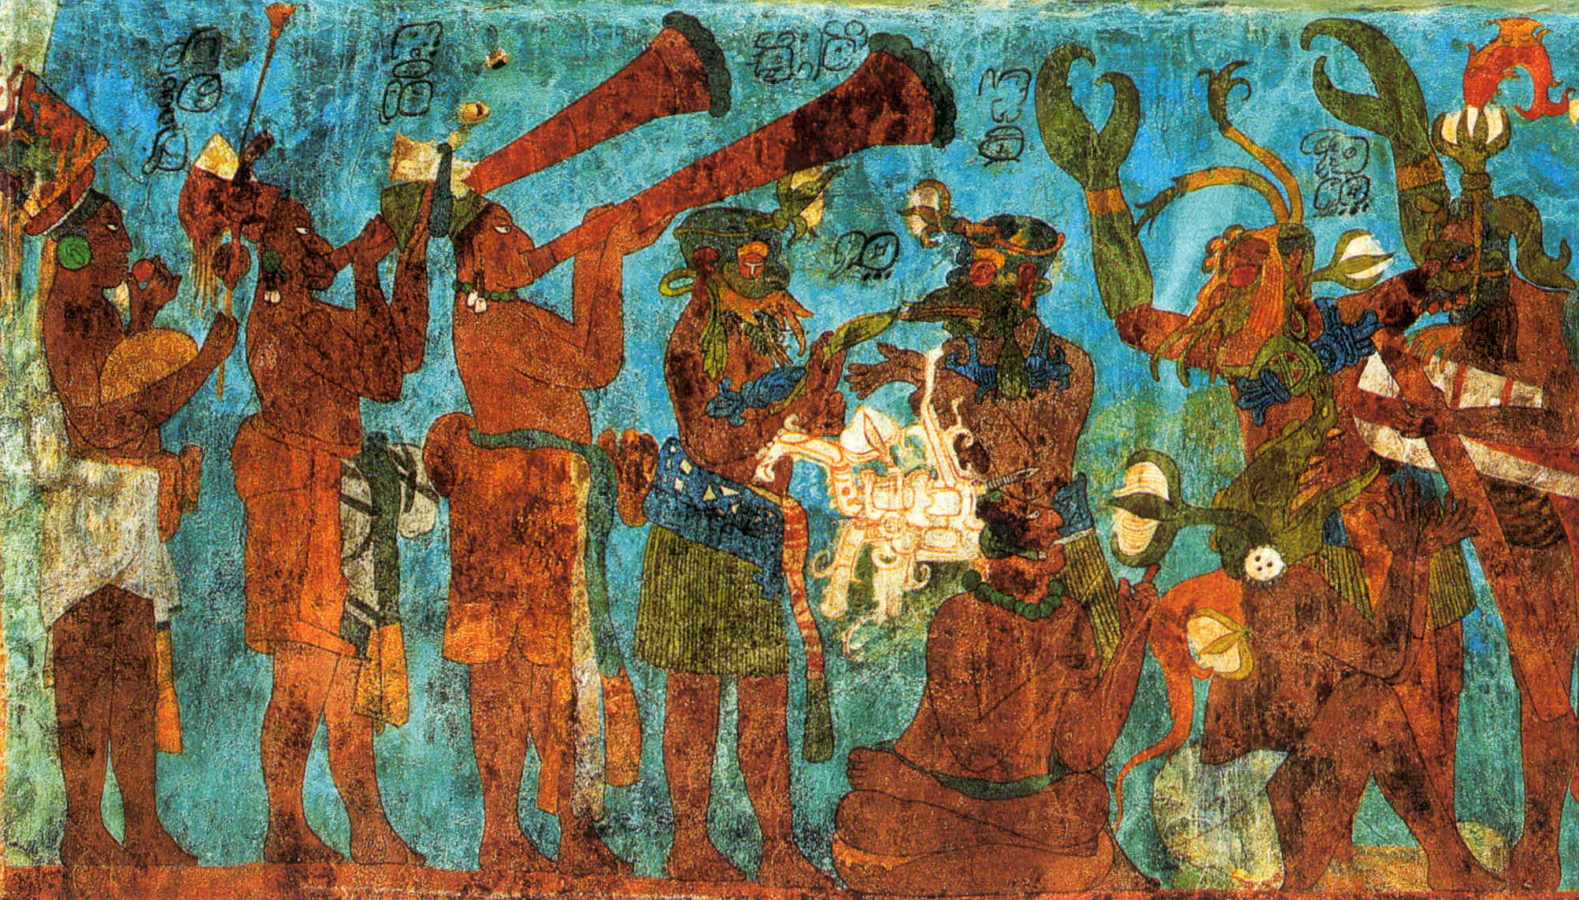 Mural from Bonampak, unknown Mayan artist, 8th century CE, Chiapas, Mexico, The History of Mexico in Murals